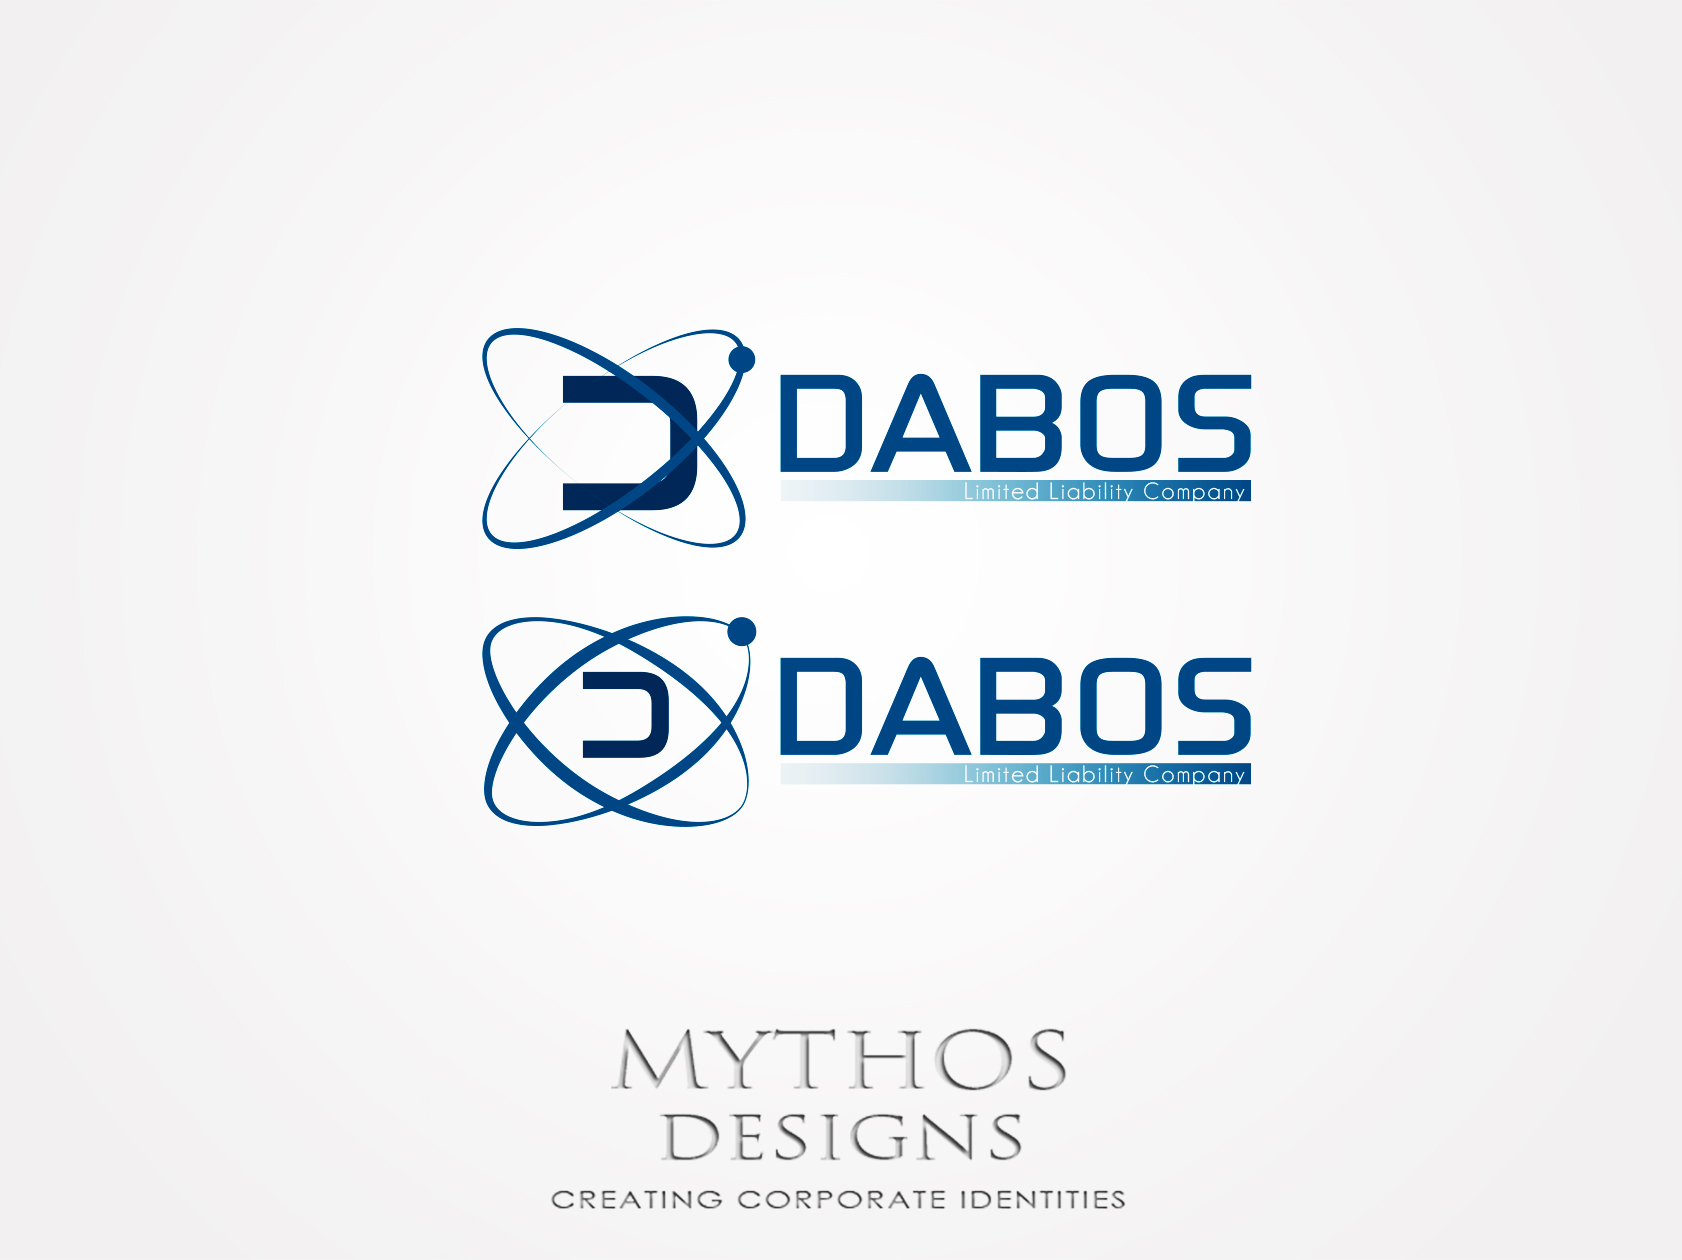 Logo Design by Mythos Designs - Entry No. 49 in the Logo Design Contest Imaginative Logo Design for DABOS, Limited Liability Company.